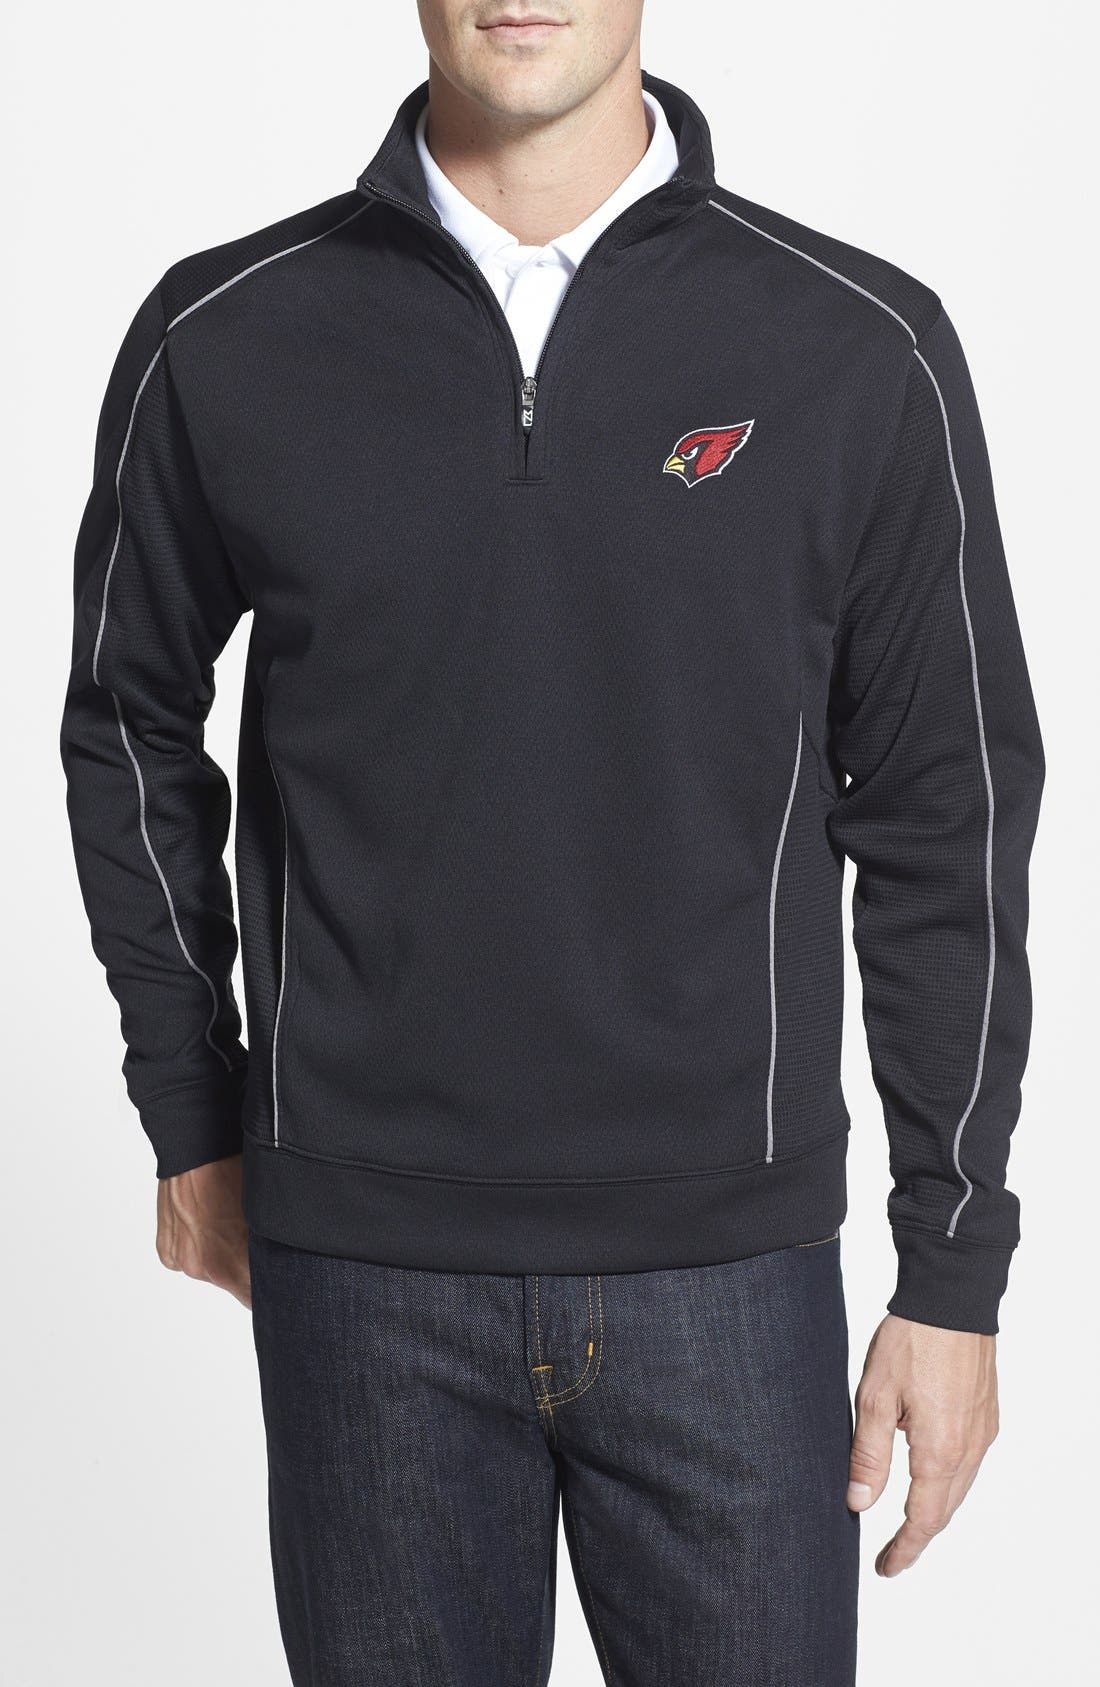 CUTTER & BUCK Arizona Cardinals - Edge DryTec Moisture Wicking Half Zip Pullover, Main, color, 001